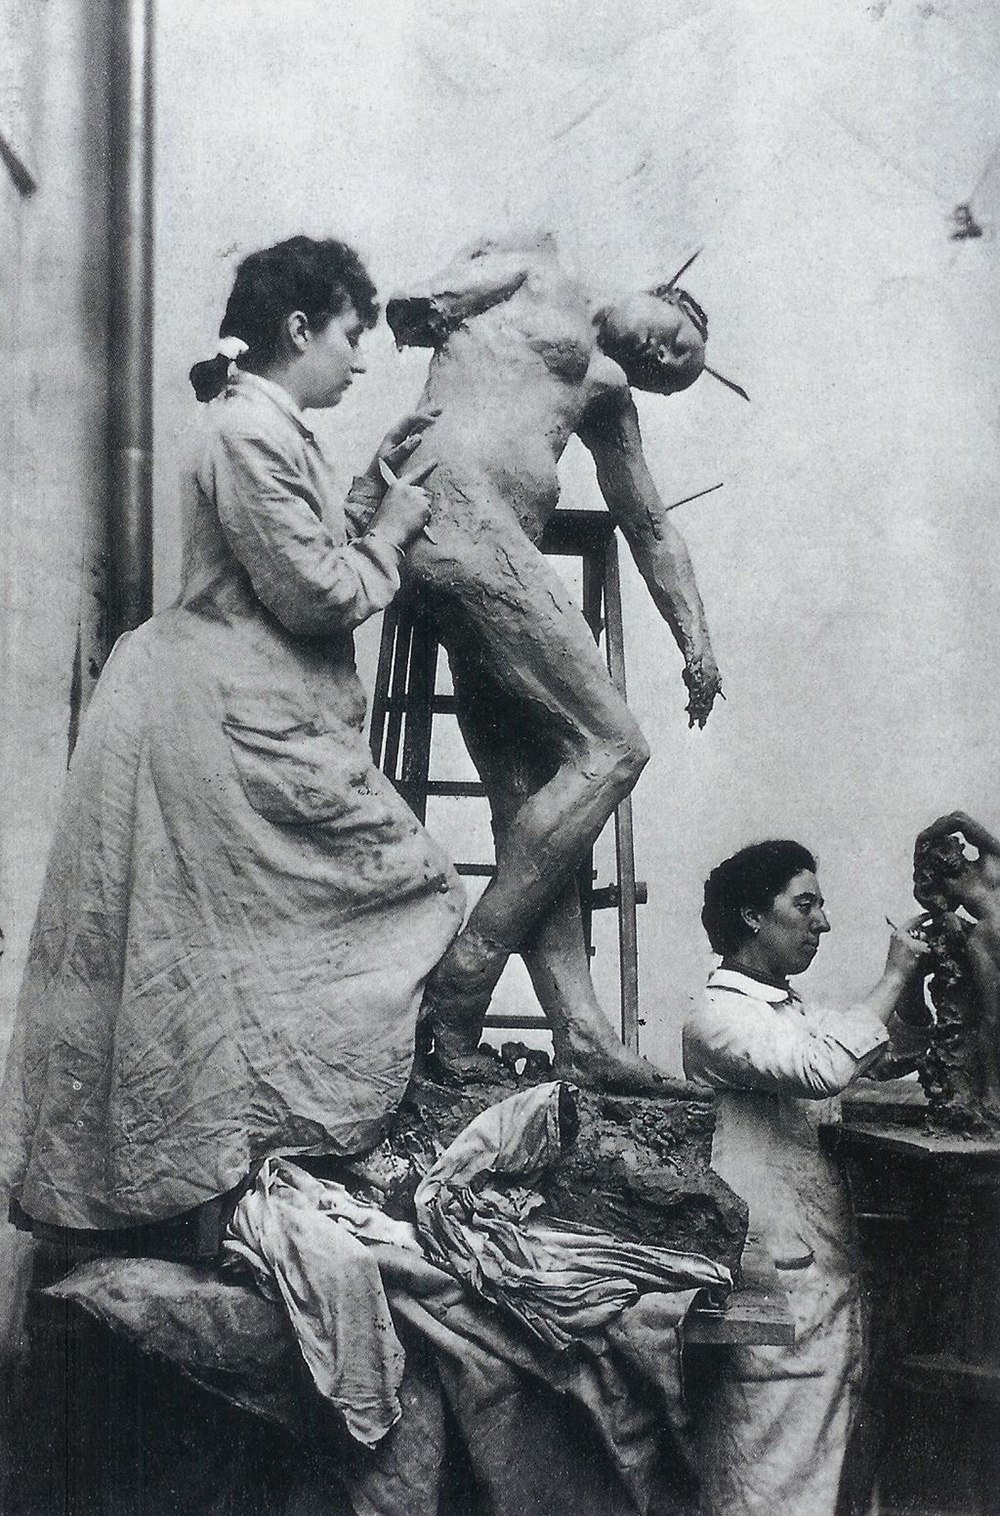 Camille Claudel (left) and Jessie Lipscomb, photographed by William Elborne, c. 1885.